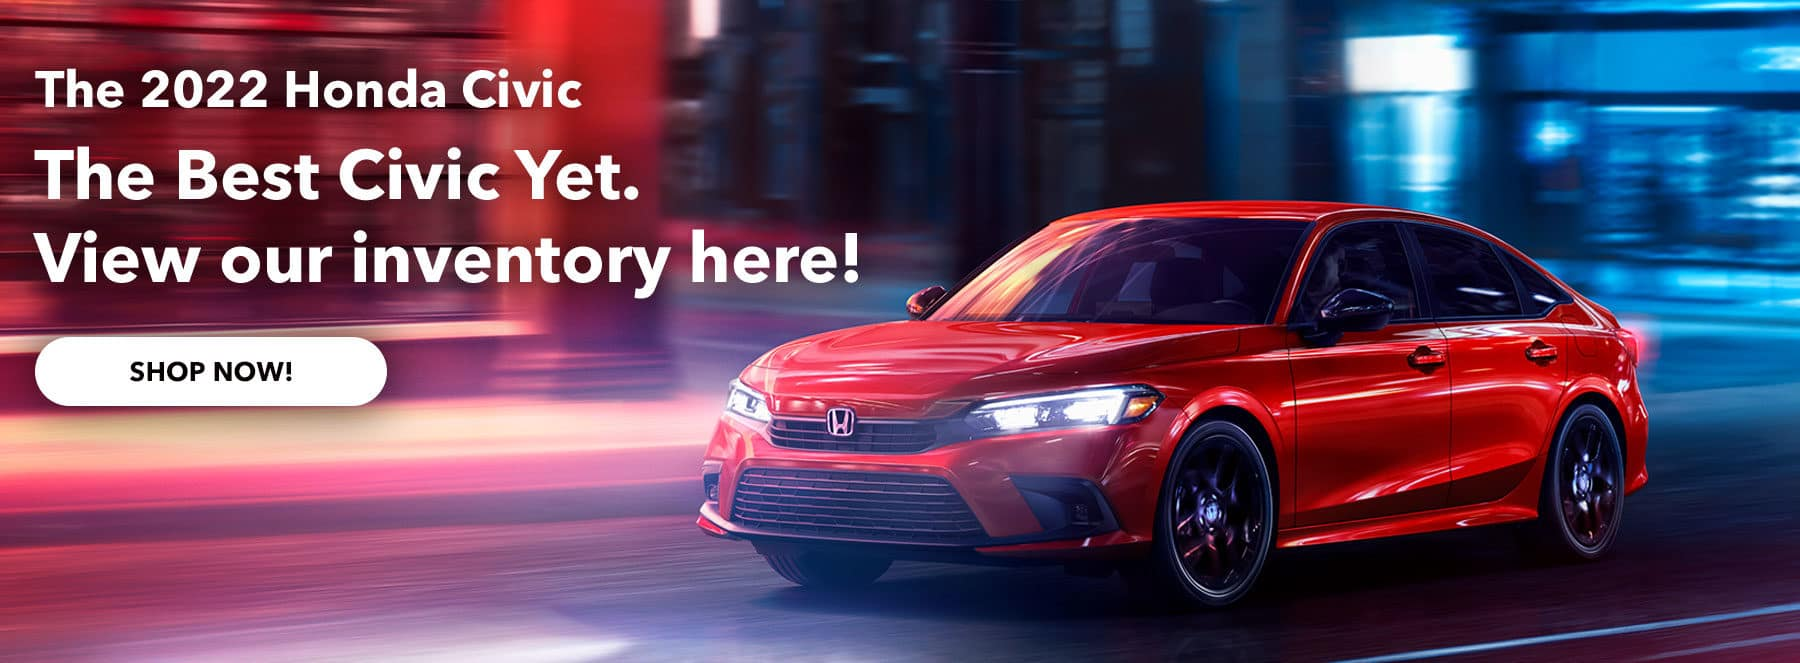 The 2022 Honda Civic, The Best Civic Yet. View our inventory here!